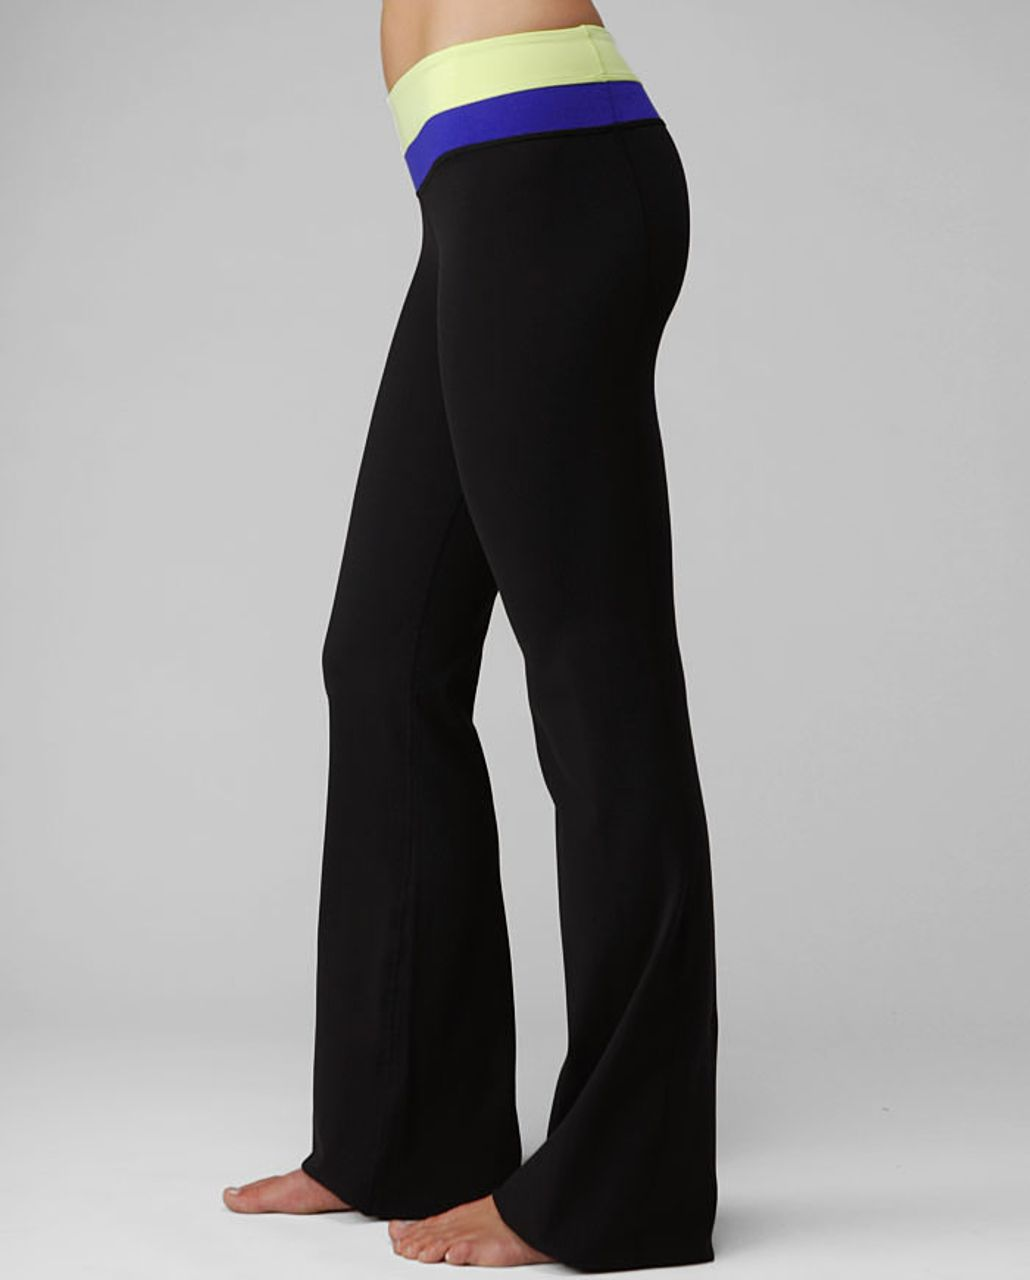 Lululemon Groove Pant (Tall) - Black /  Wish Blue